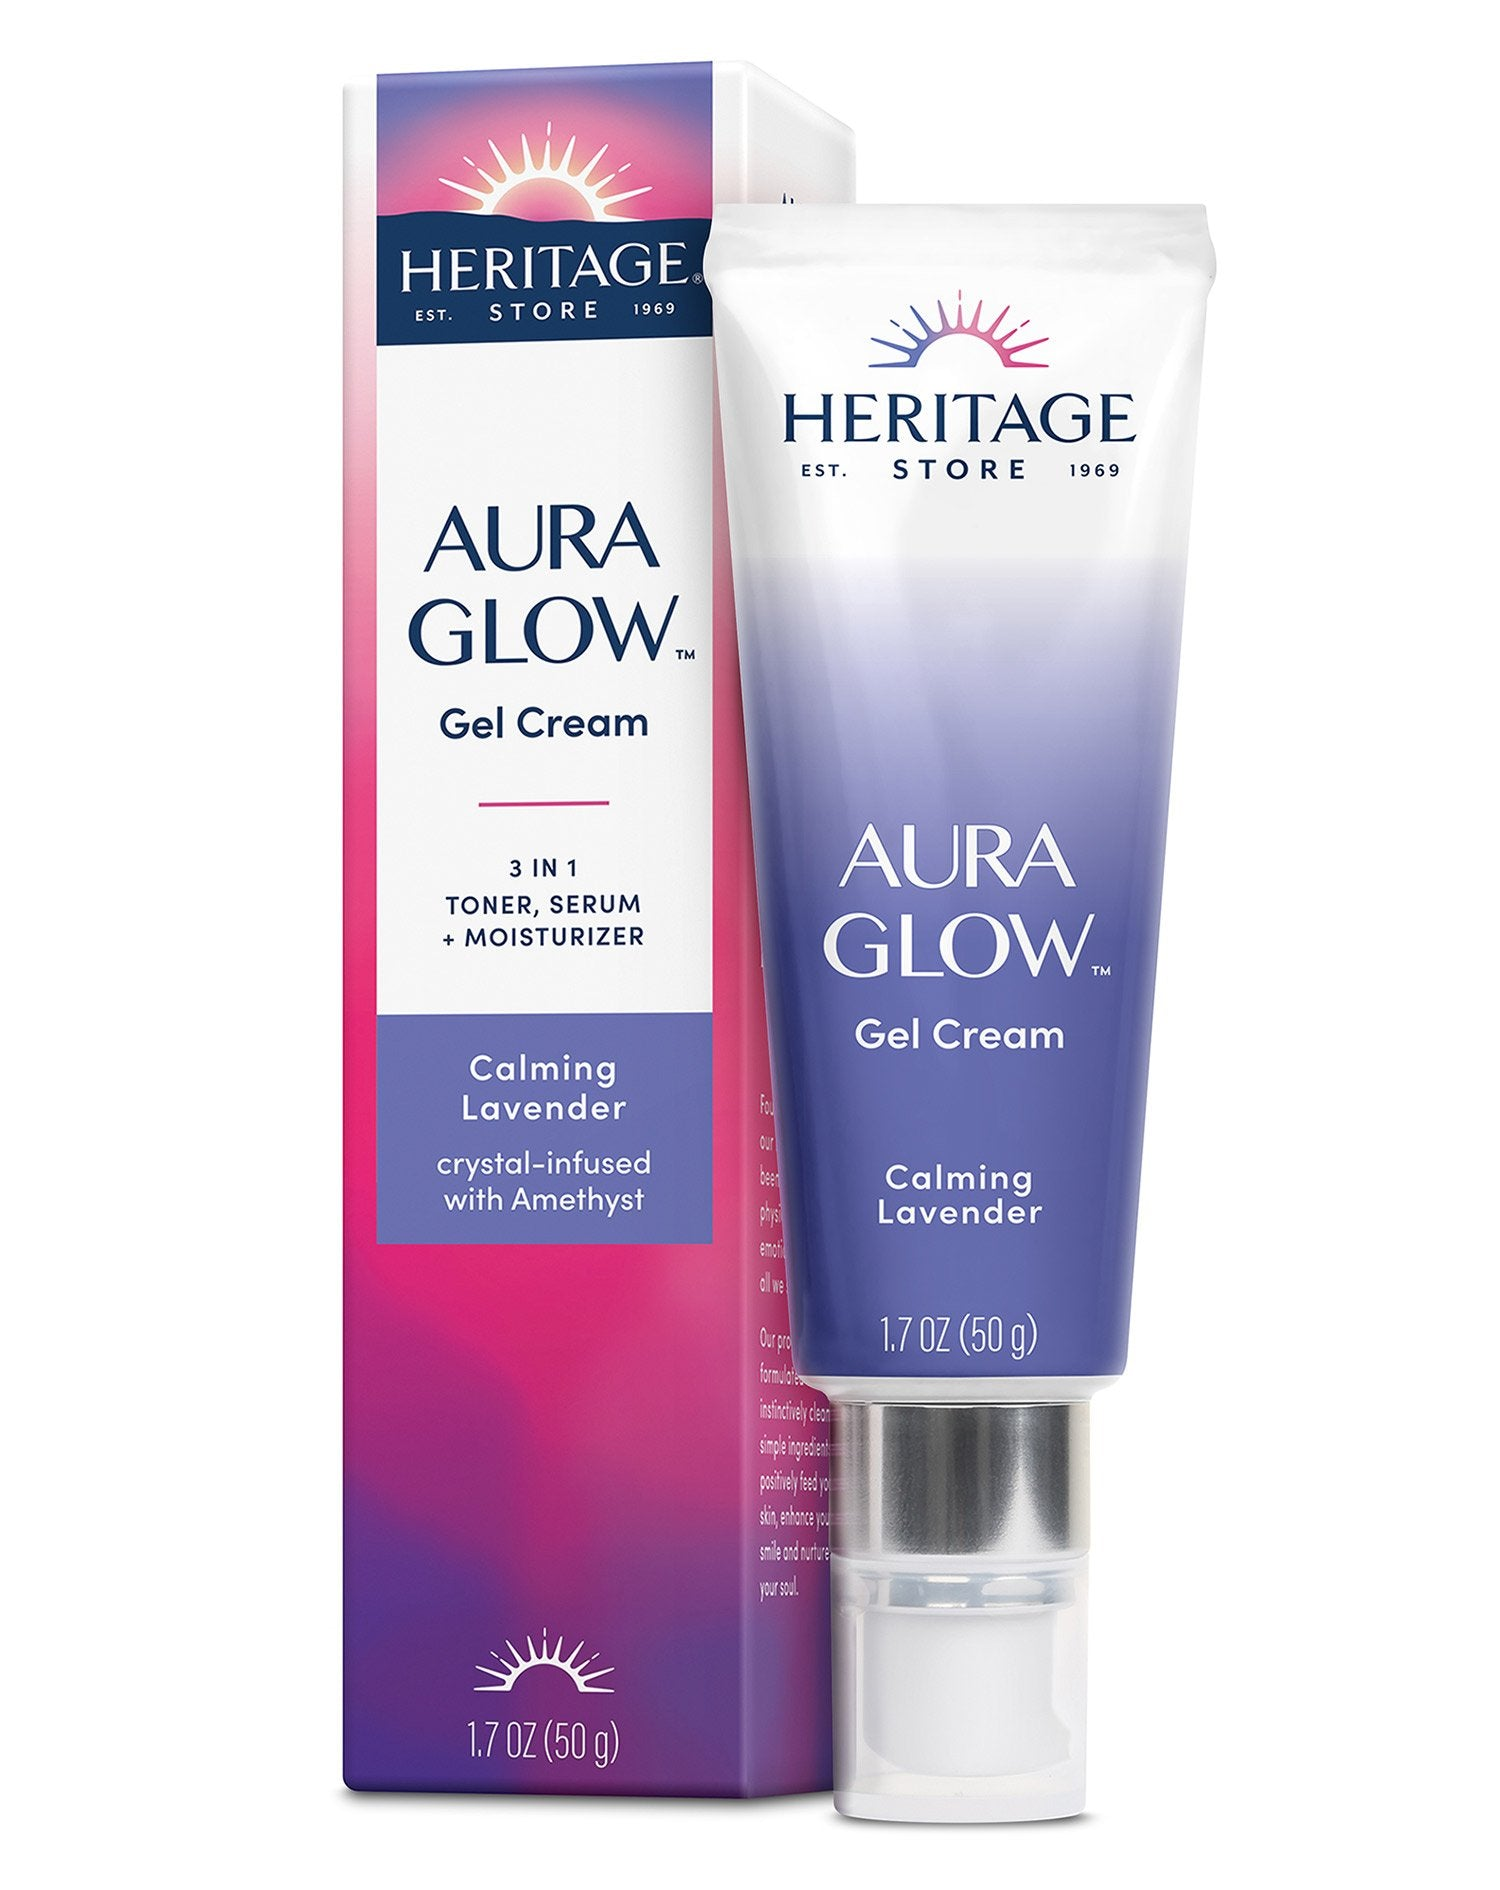 Aura Glow Gel Cream, Calming Lavender